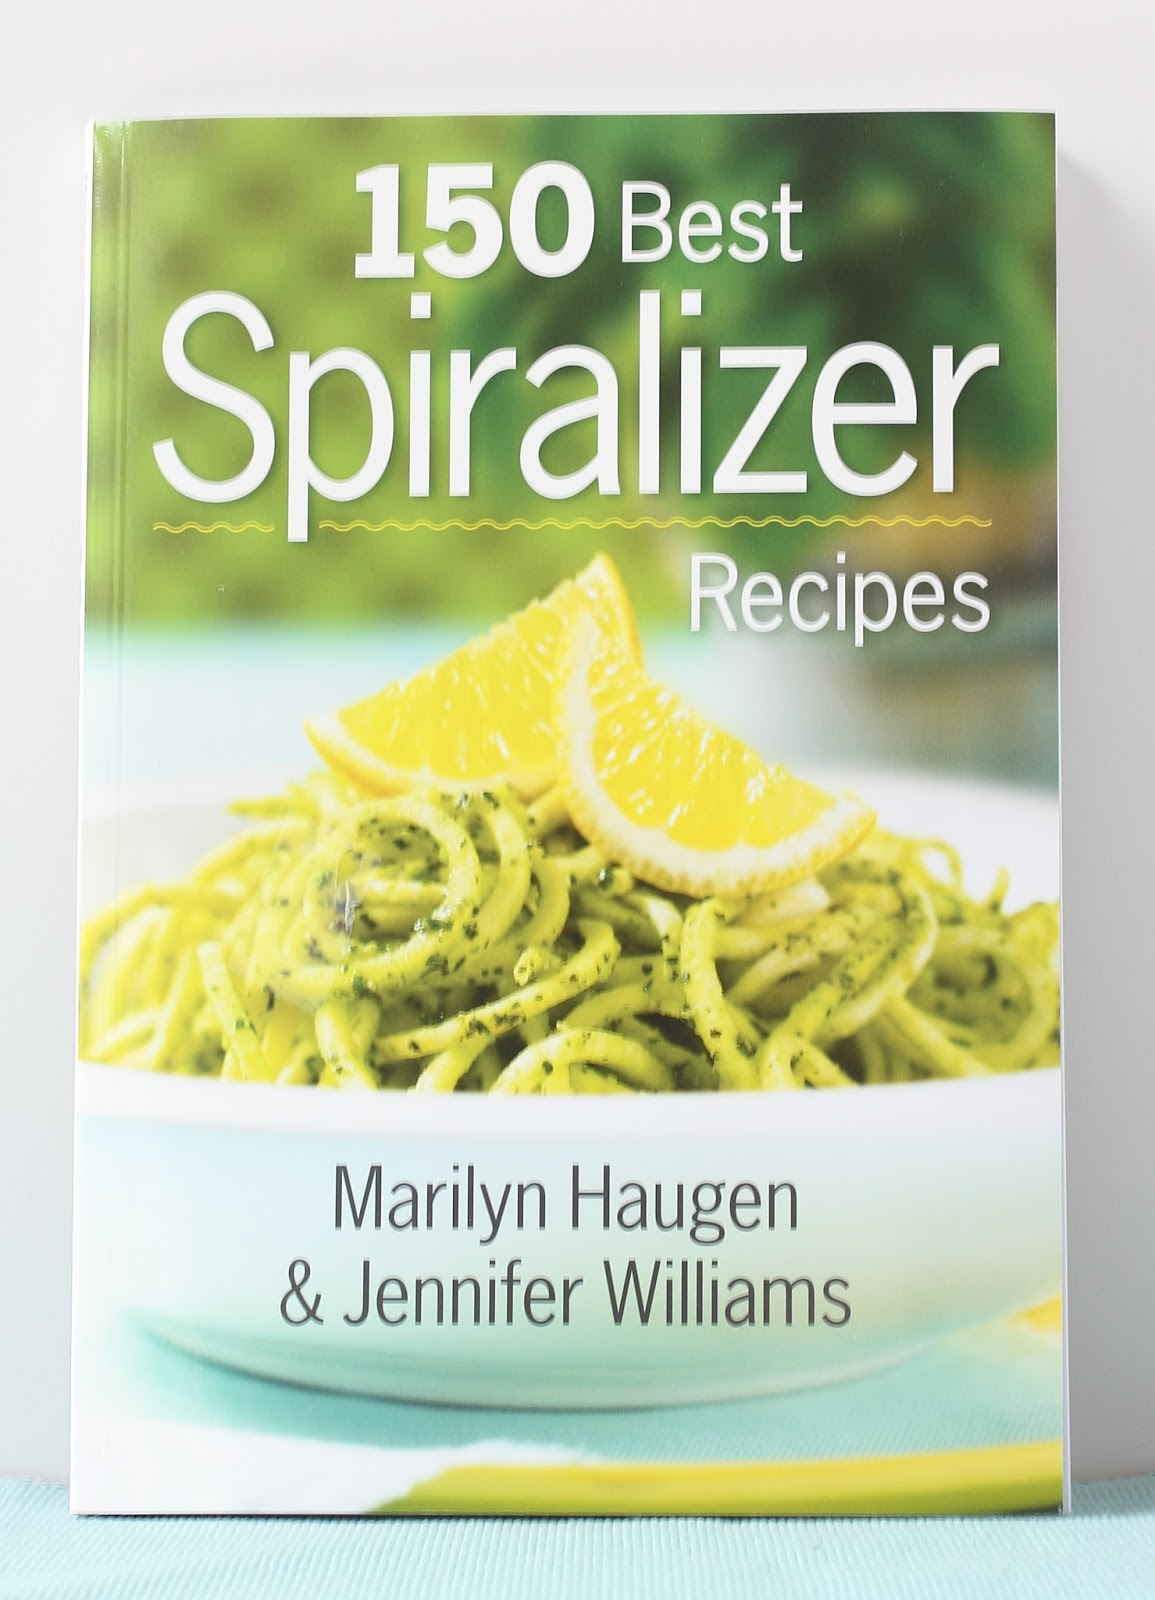 Learning to eat allergy free 150 best spiralizer recipes book review so i was excited to receive a review copy of 150 best spiralizer recipes by marilyn haugen and jennifer williams forumfinder Images